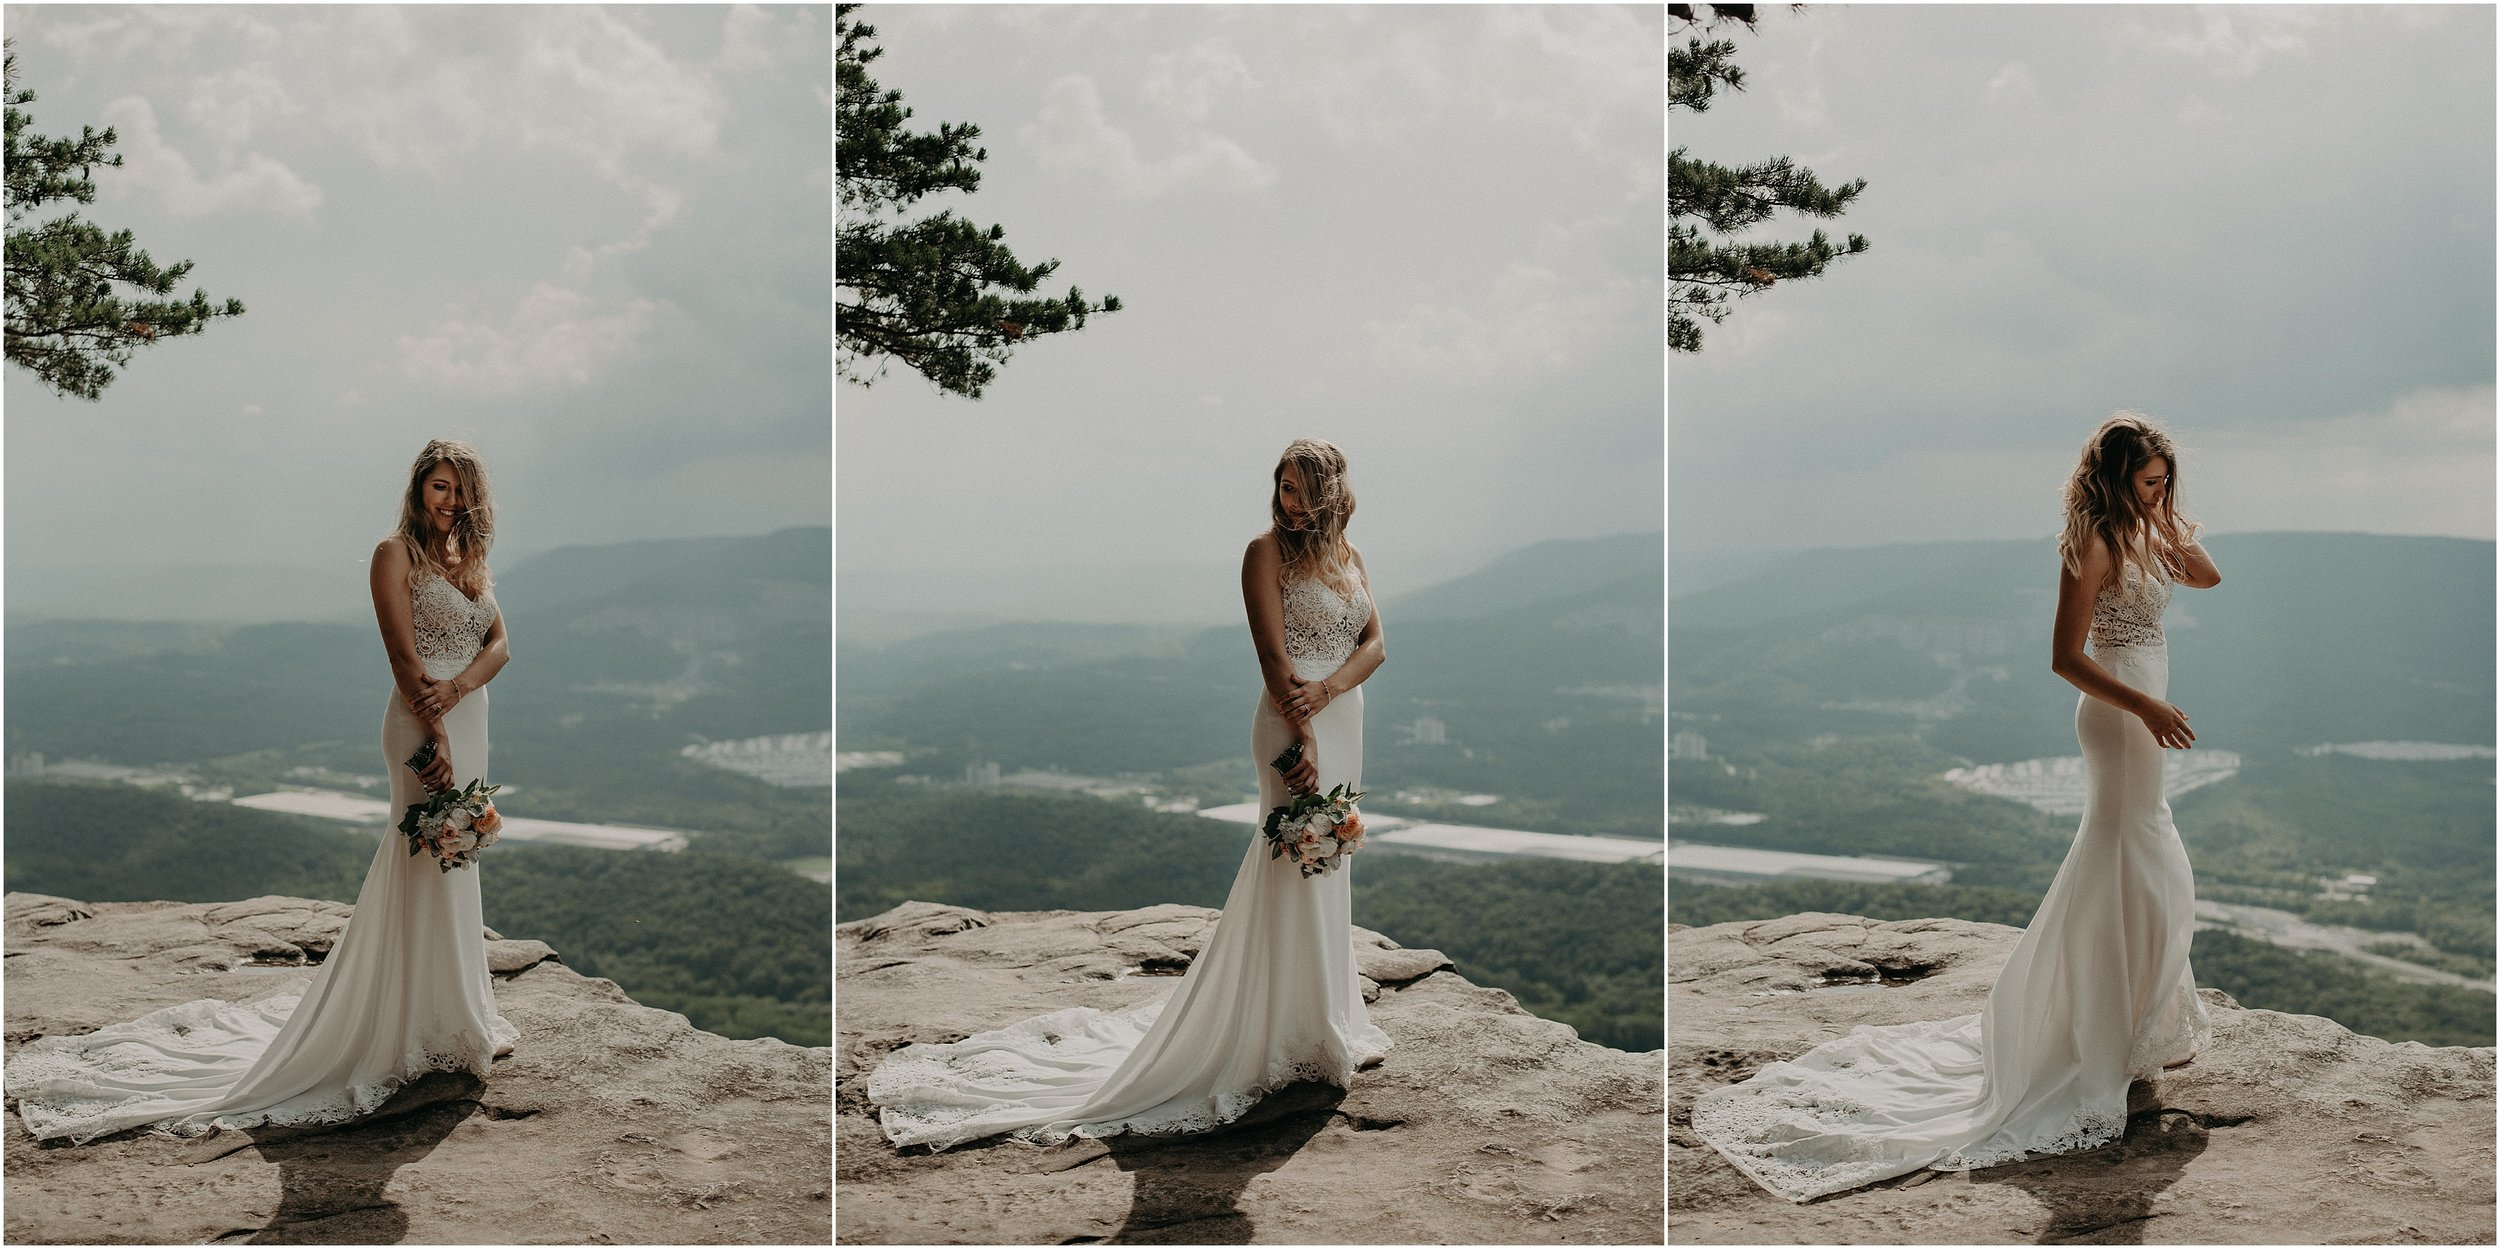 Bridal portraits before a summer storm atop Sunset Rock in Chattanooga, Tennessee